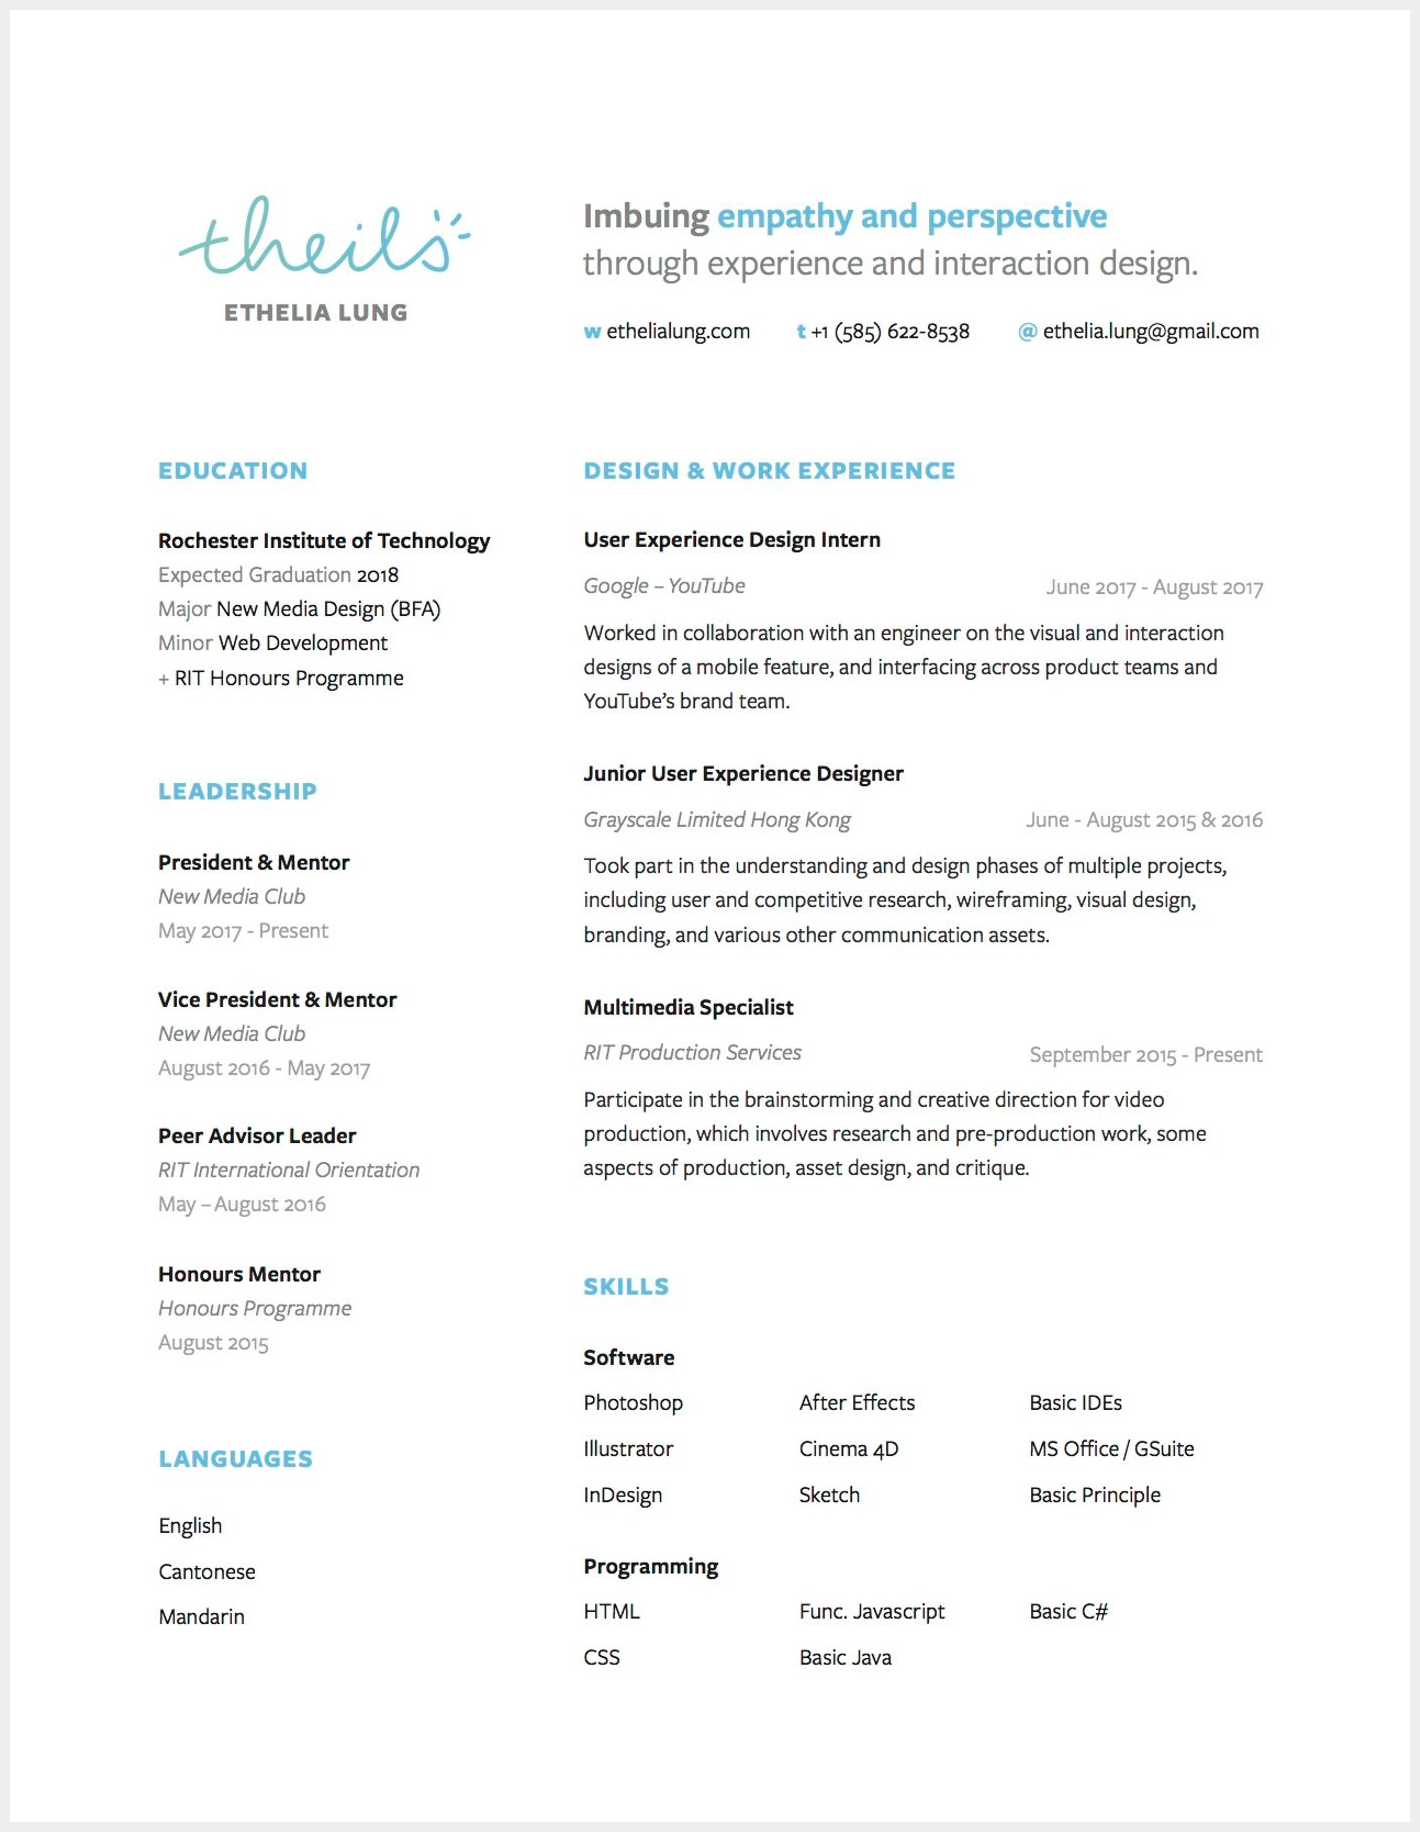 8 Brilliant Ux Designer Resumes That Secured Job Offers From Google